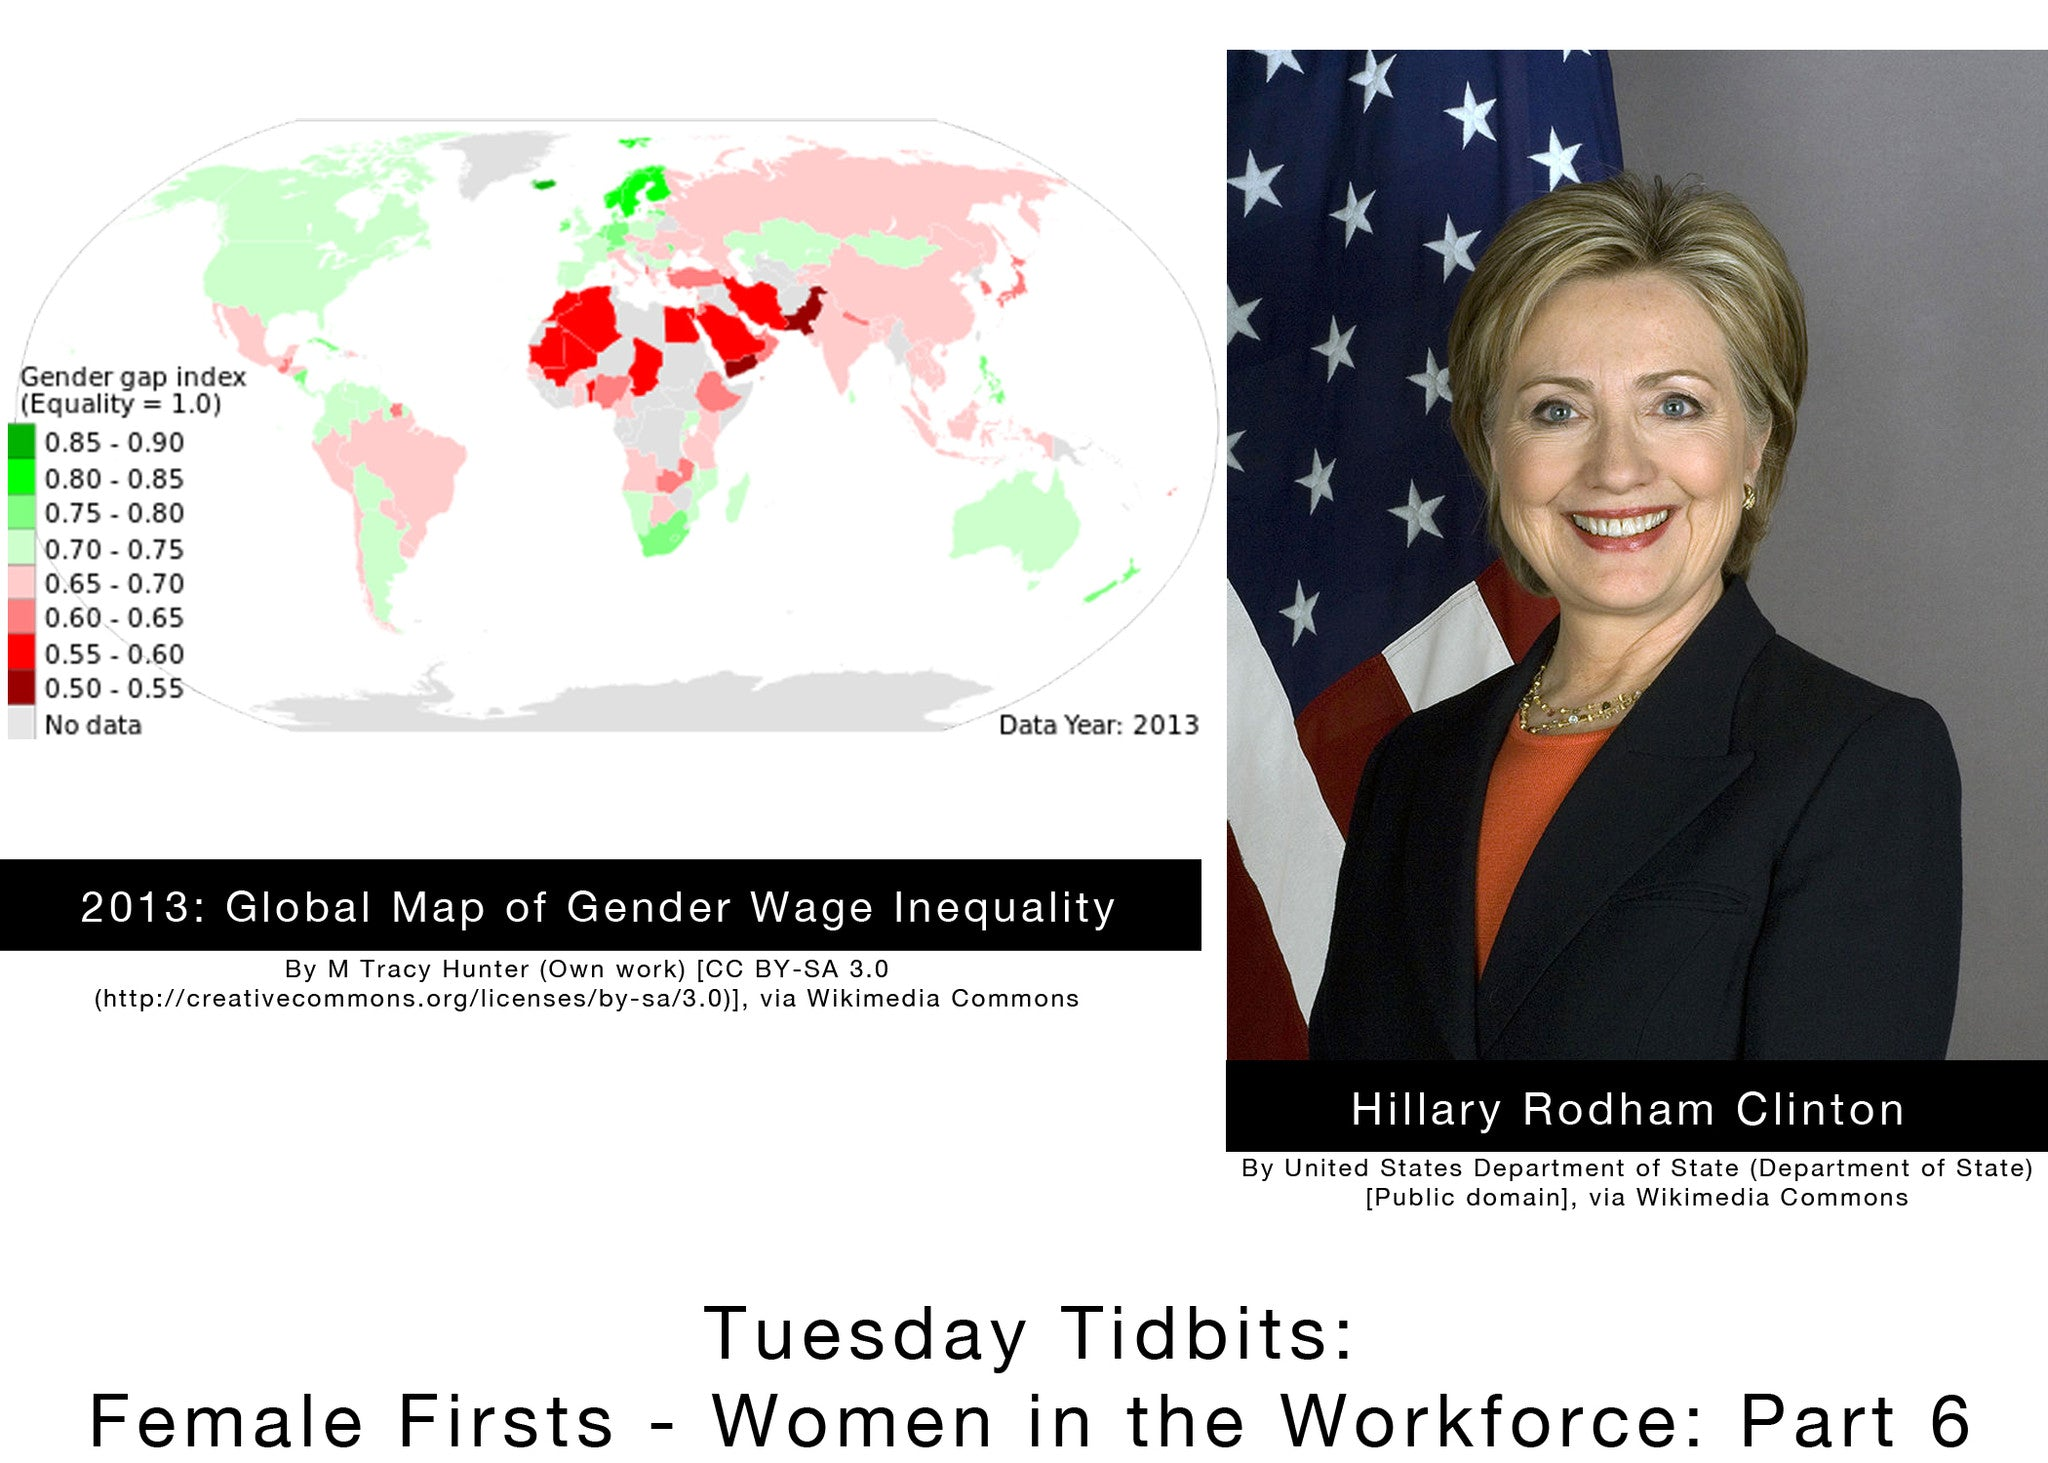 Tuesday Tidbits: Female Firsts - Women in the Workforce: Part 6